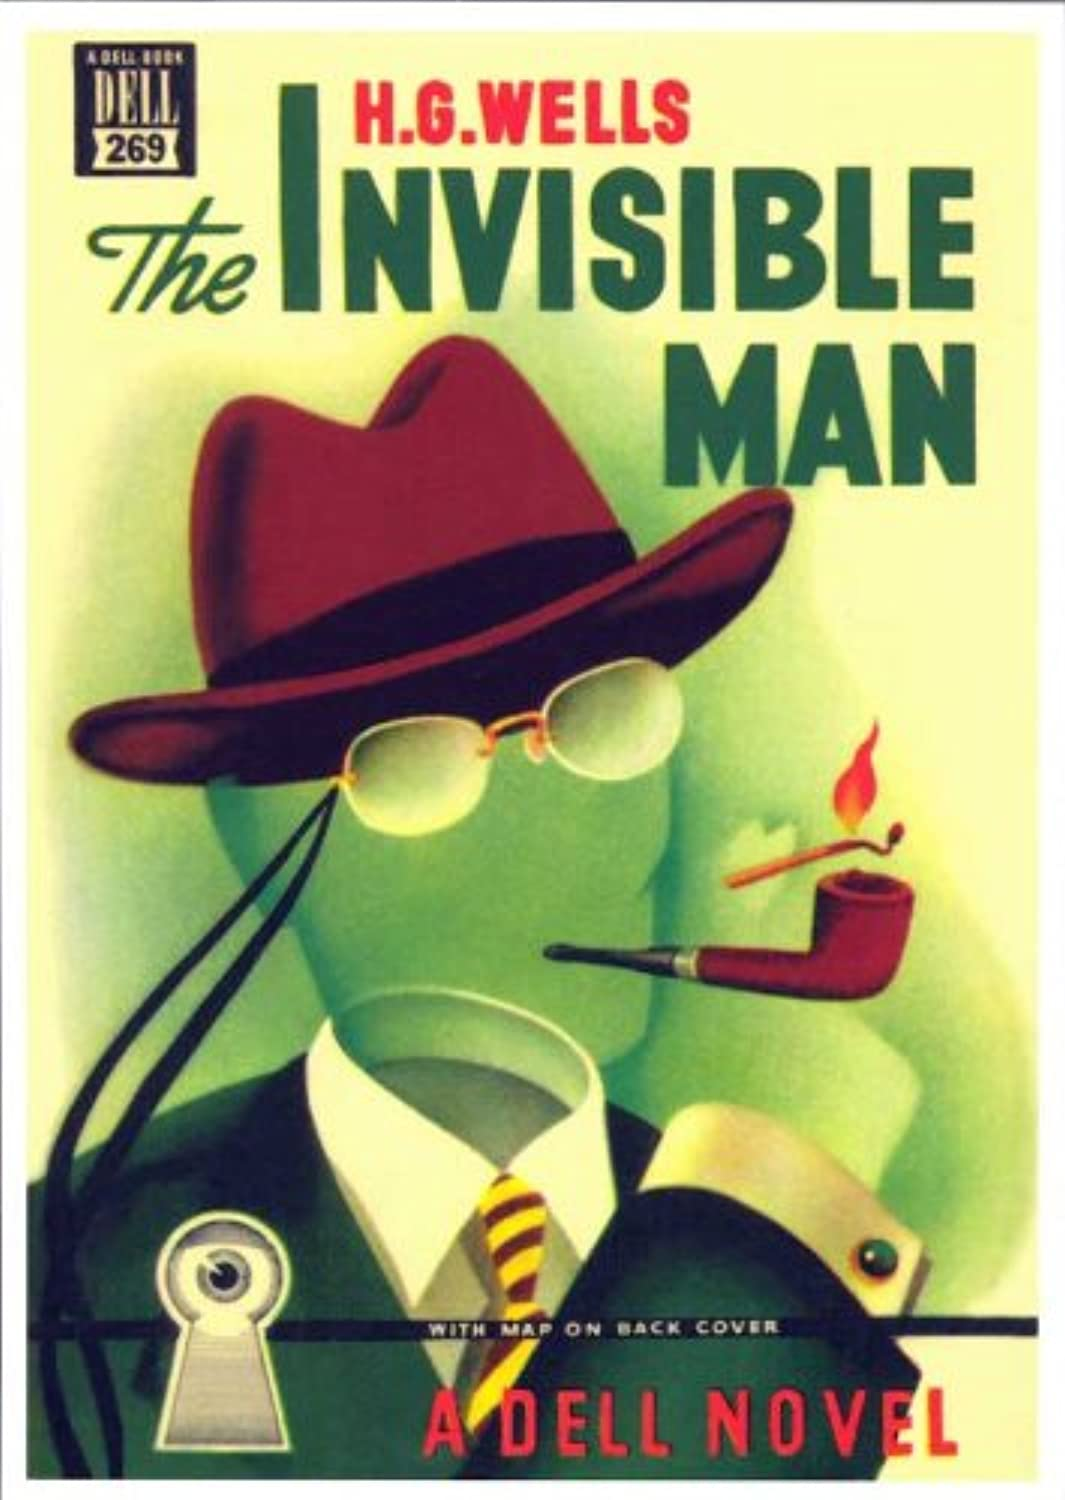 Invisible Man 11 x 17 Retro Book Cover Poster by postersdepeliculas by postersdepeliculas